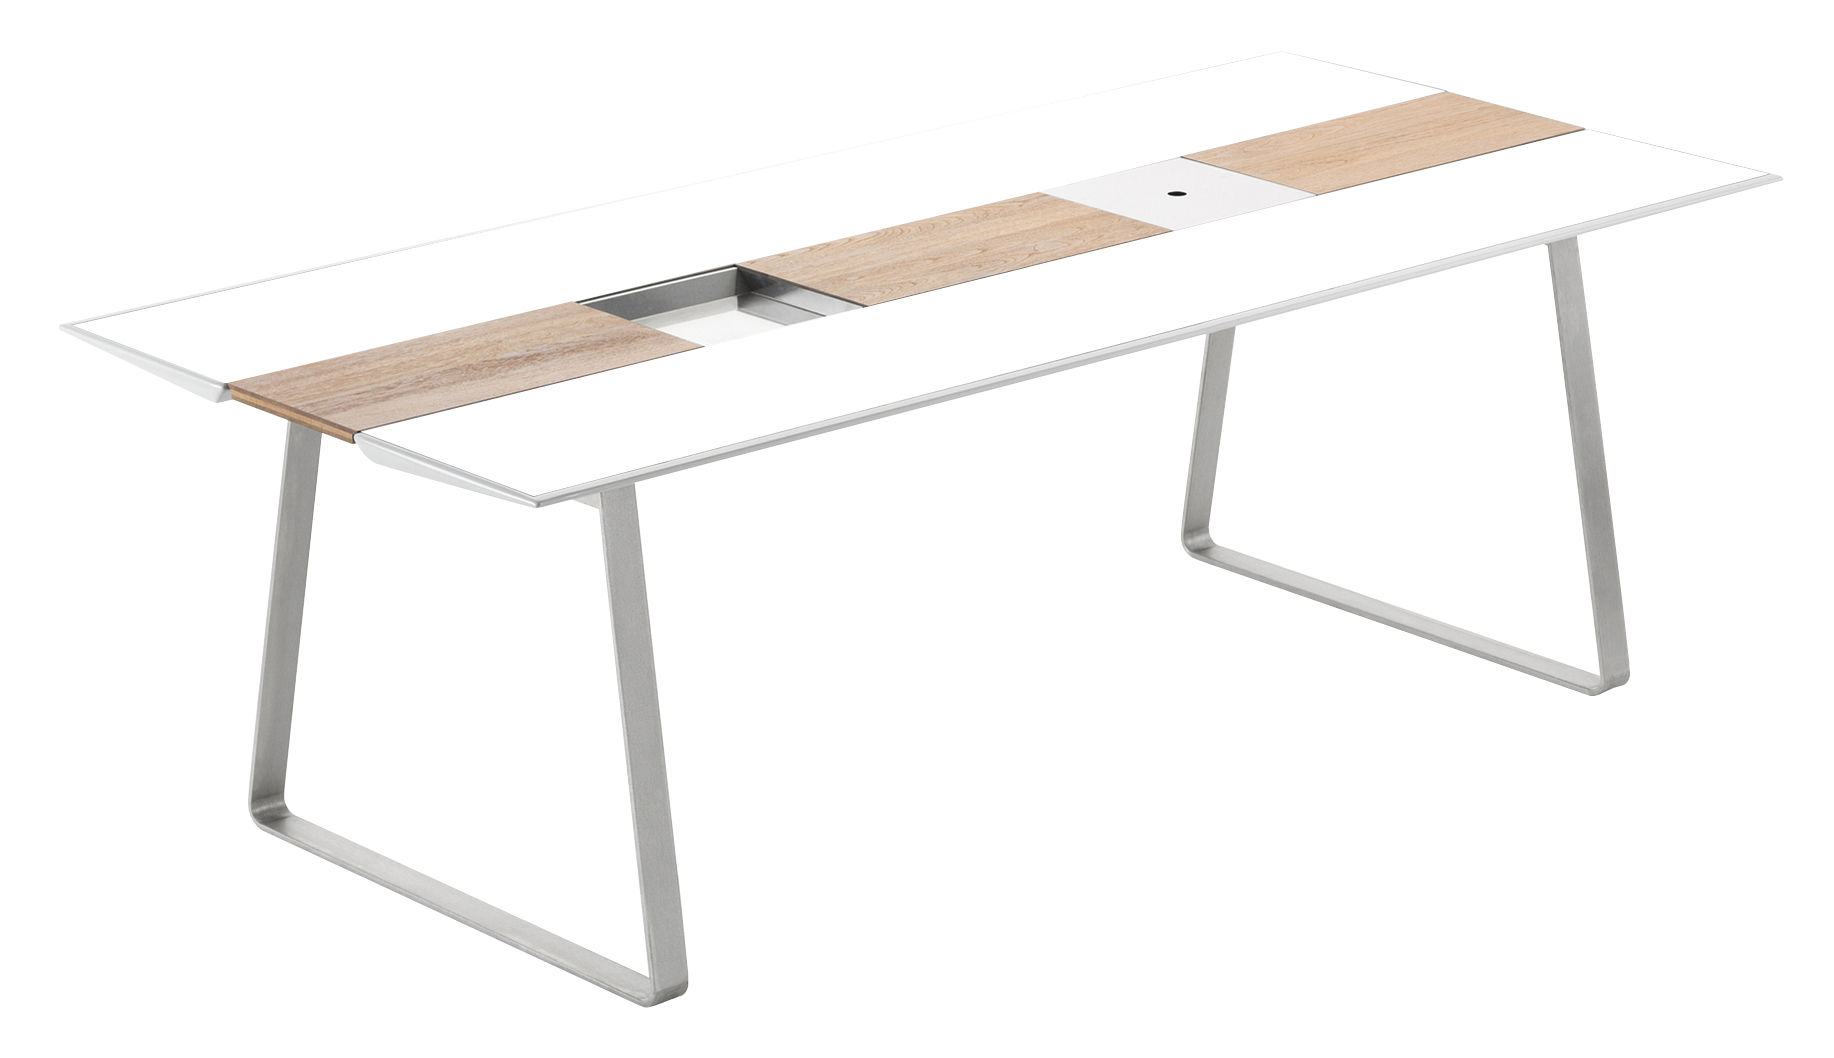 table extrados corian l 242 cm plateau blanc chemin de table teck blanc ego. Black Bedroom Furniture Sets. Home Design Ideas